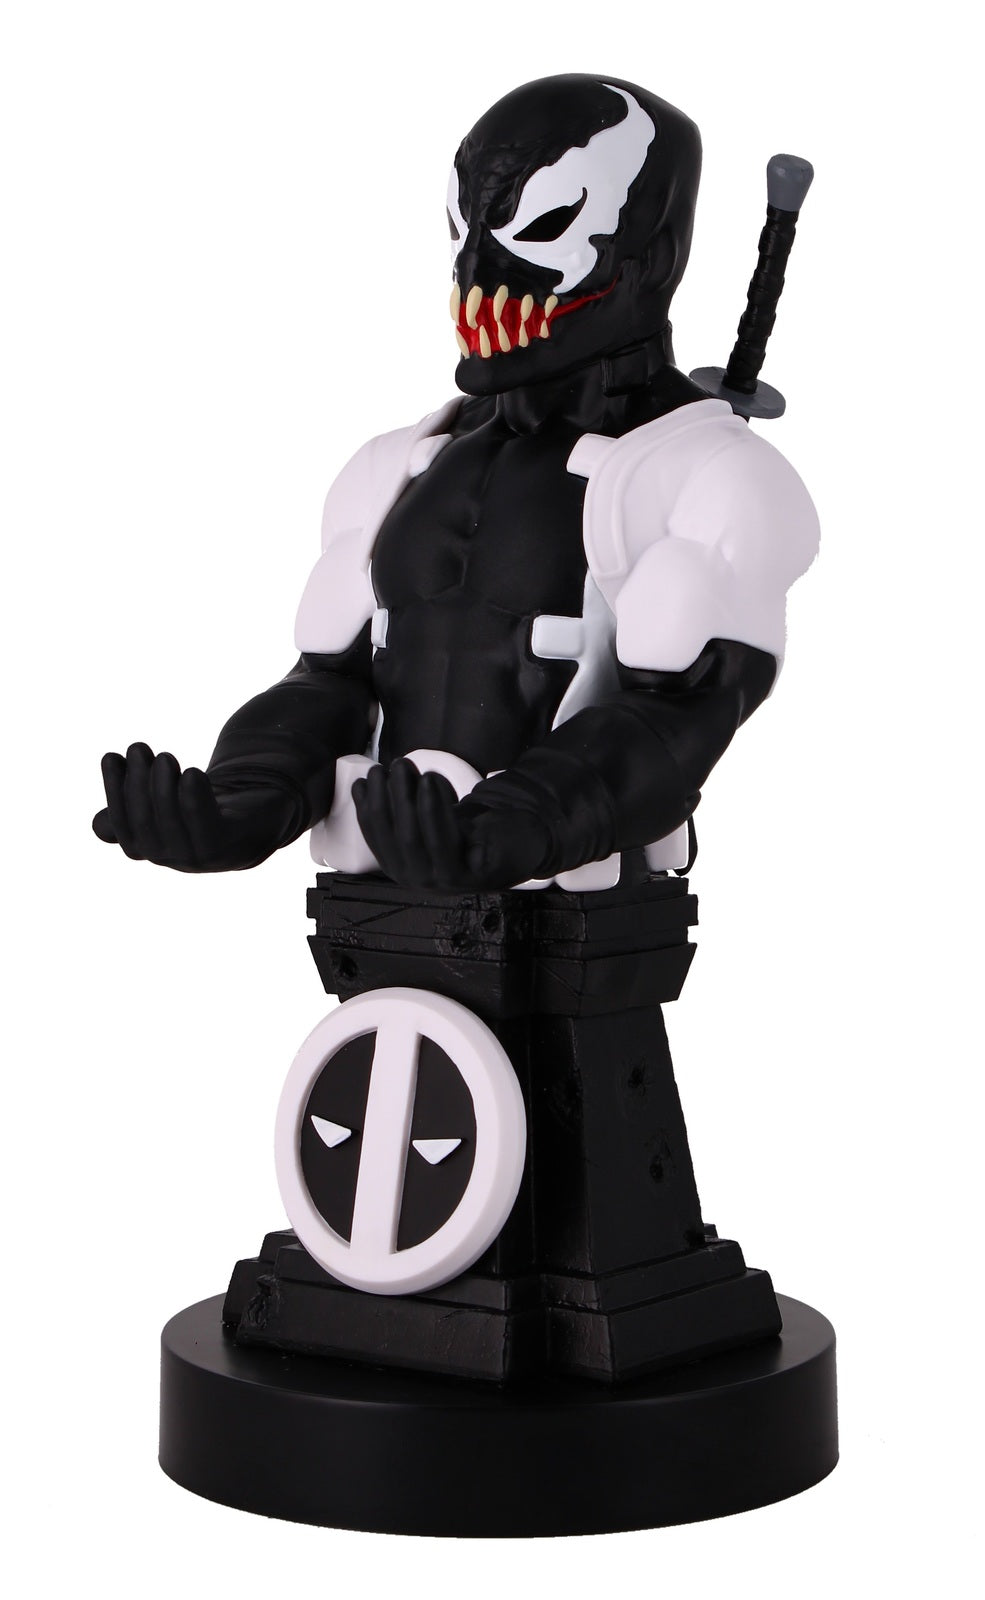 Cable Guy Controller Holder - Venom - PS4